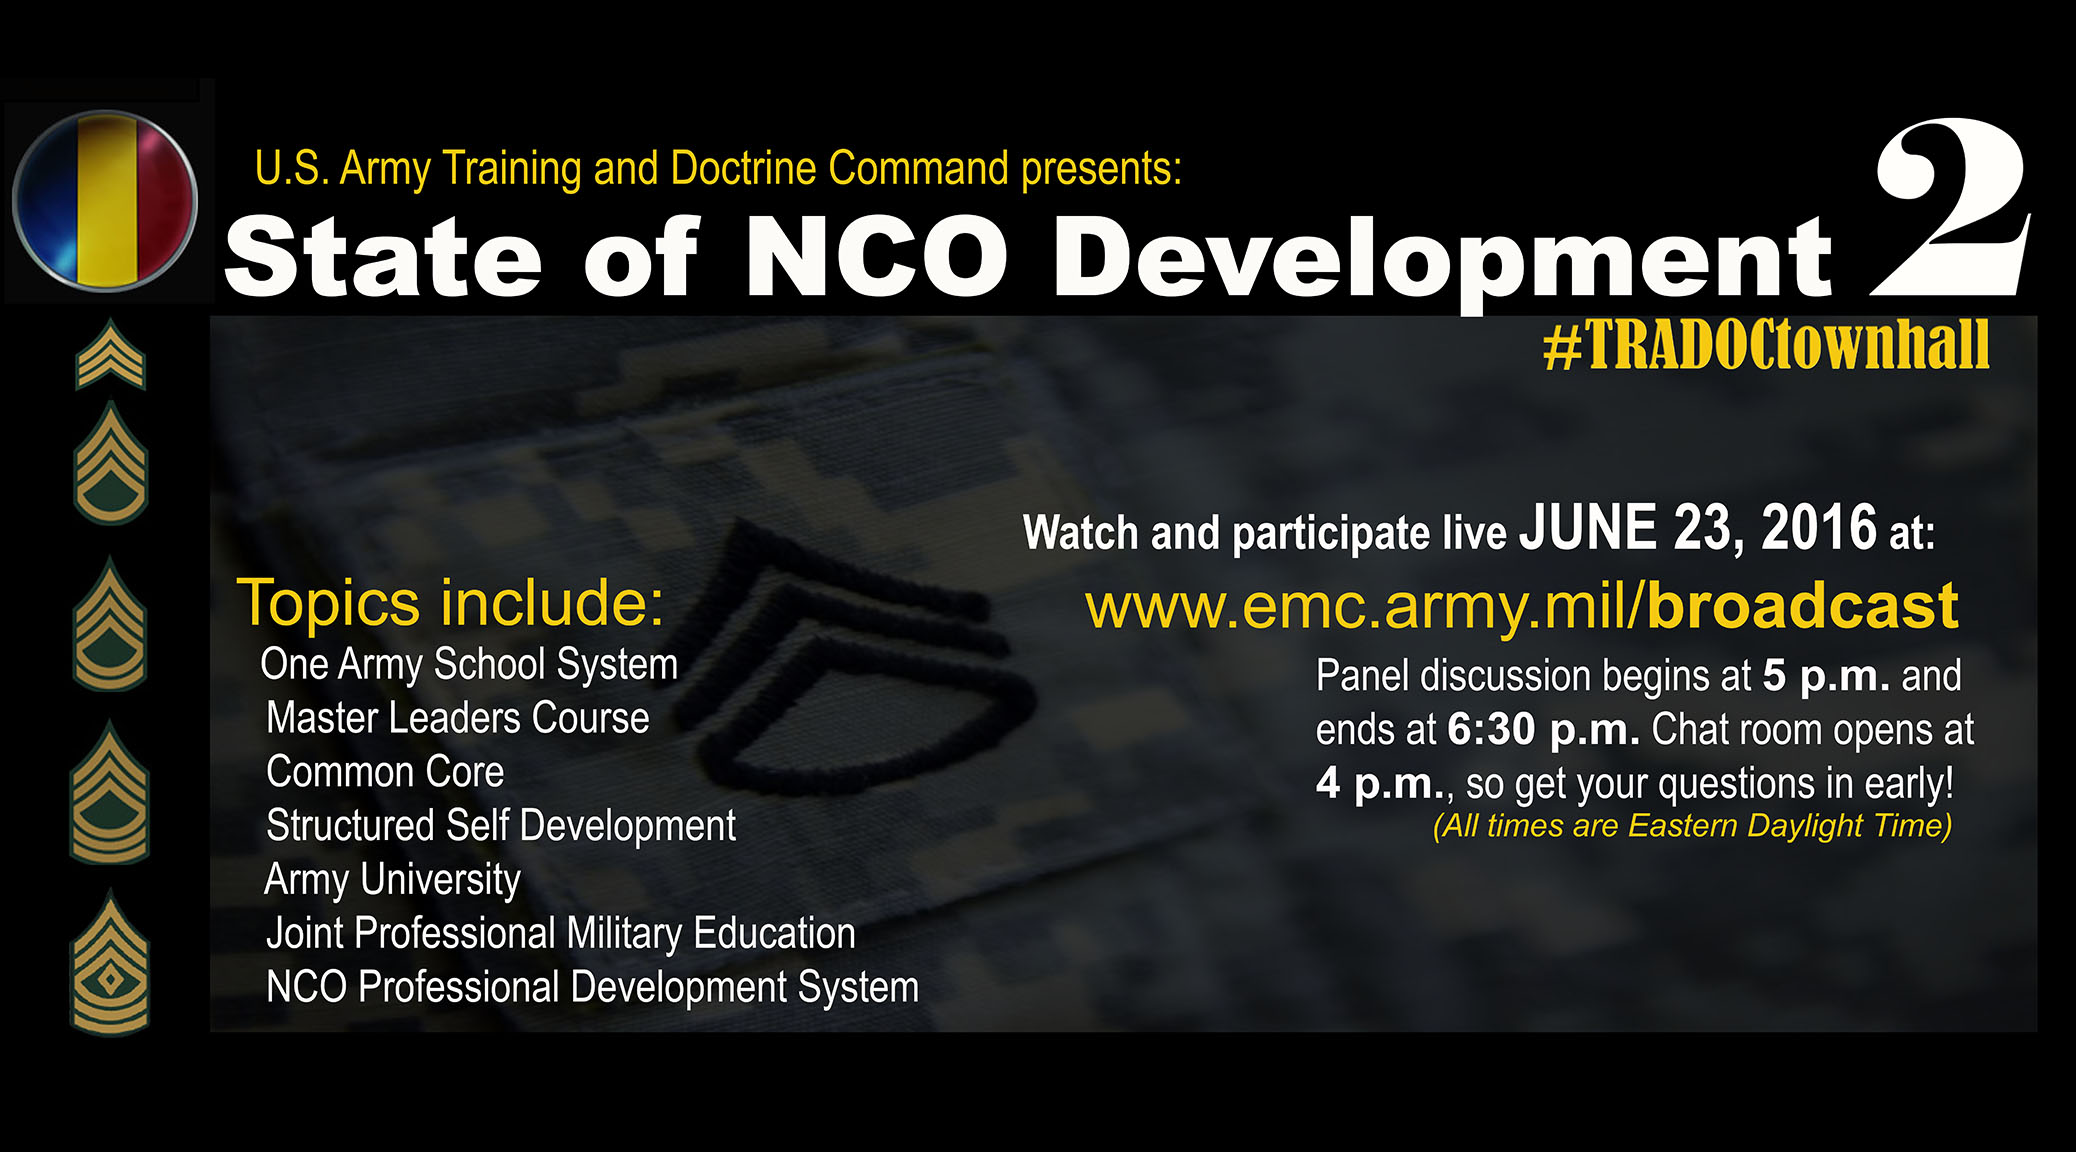 State of NCO Development Town Hall 2 Will Focus on Leader Development